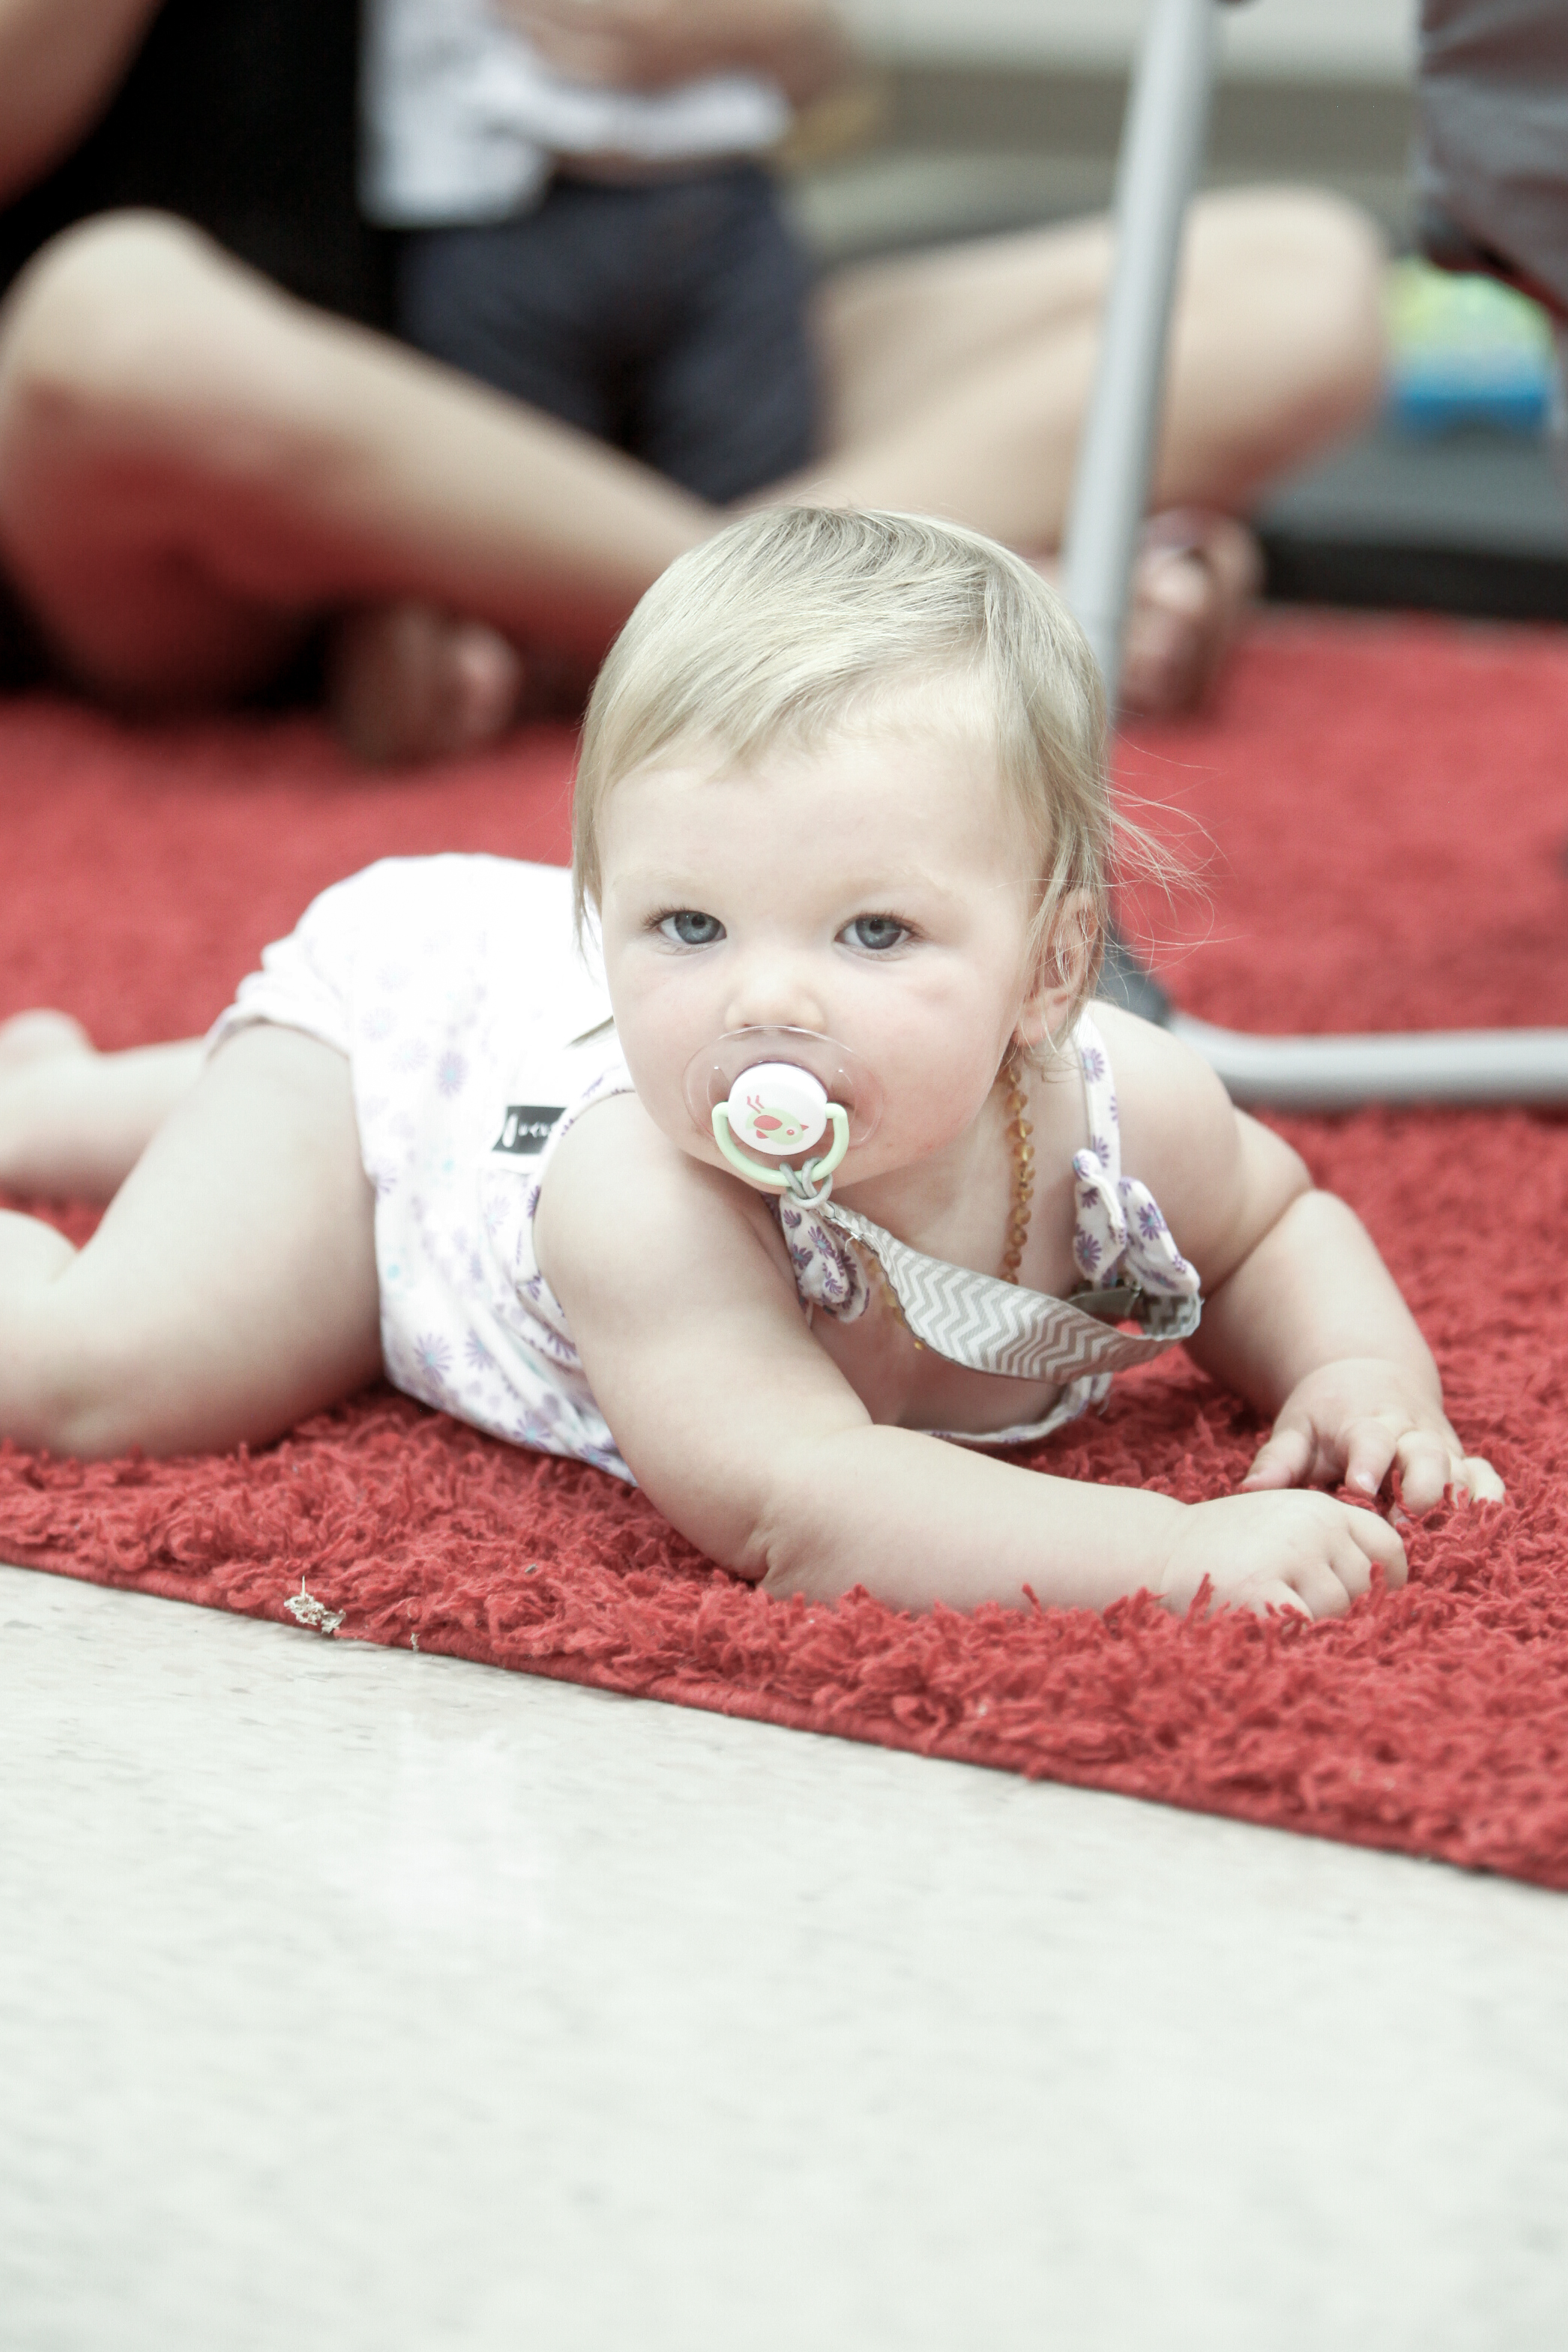 Climbers   Babies are cared for in the Climbers class from the time they are 6 weeks old until they are walking.